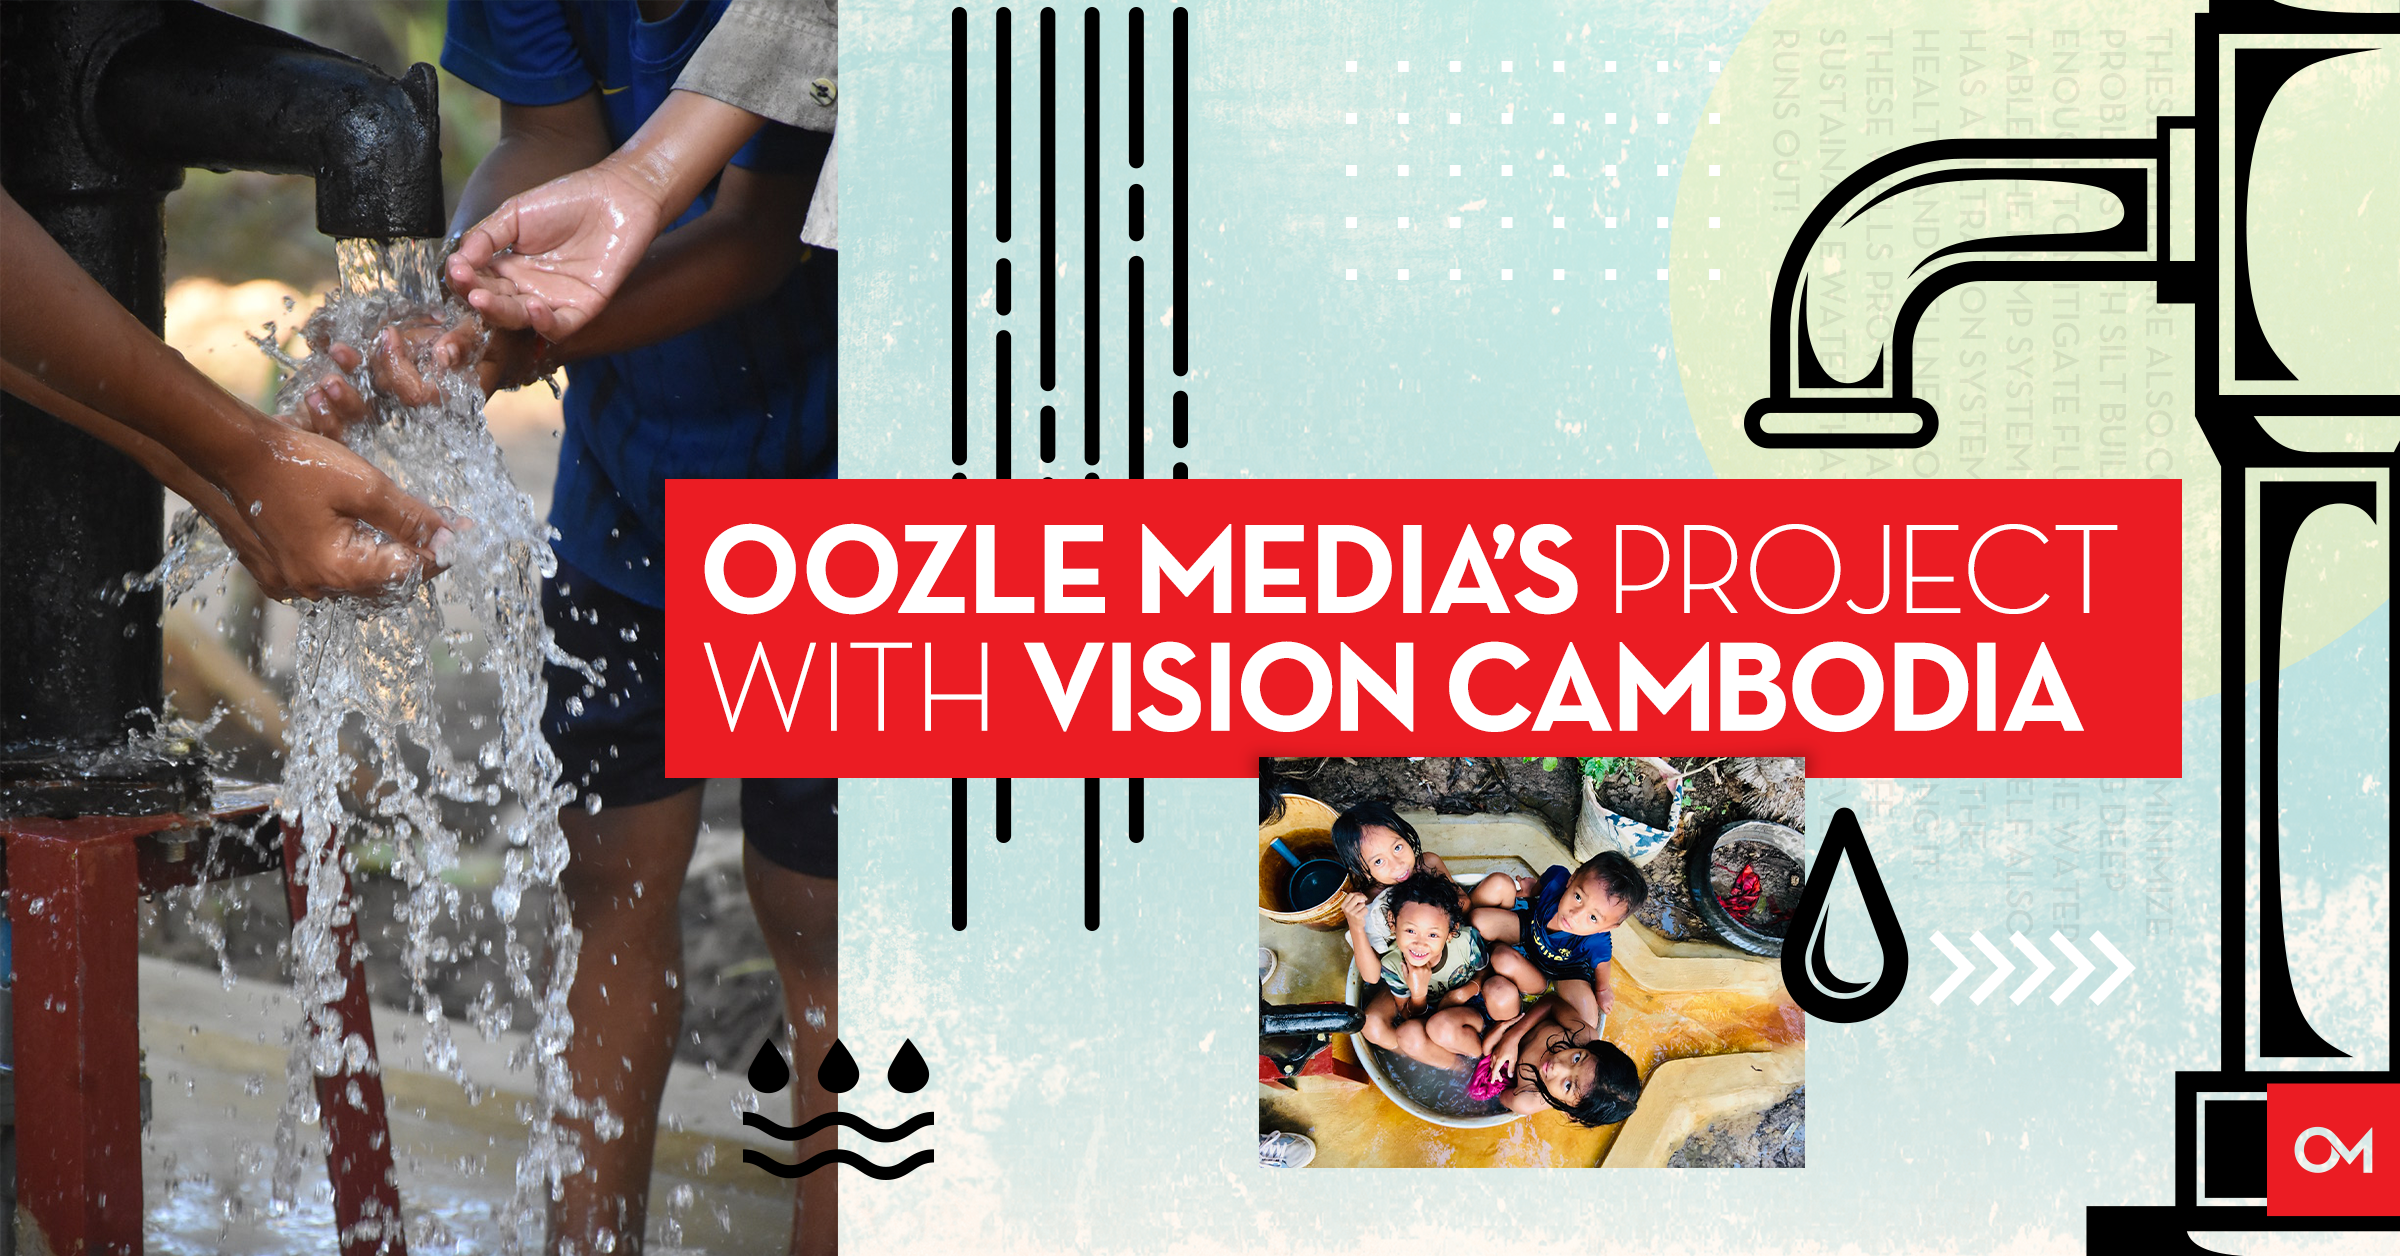 Oozle Media's Project with Vision Cambodia